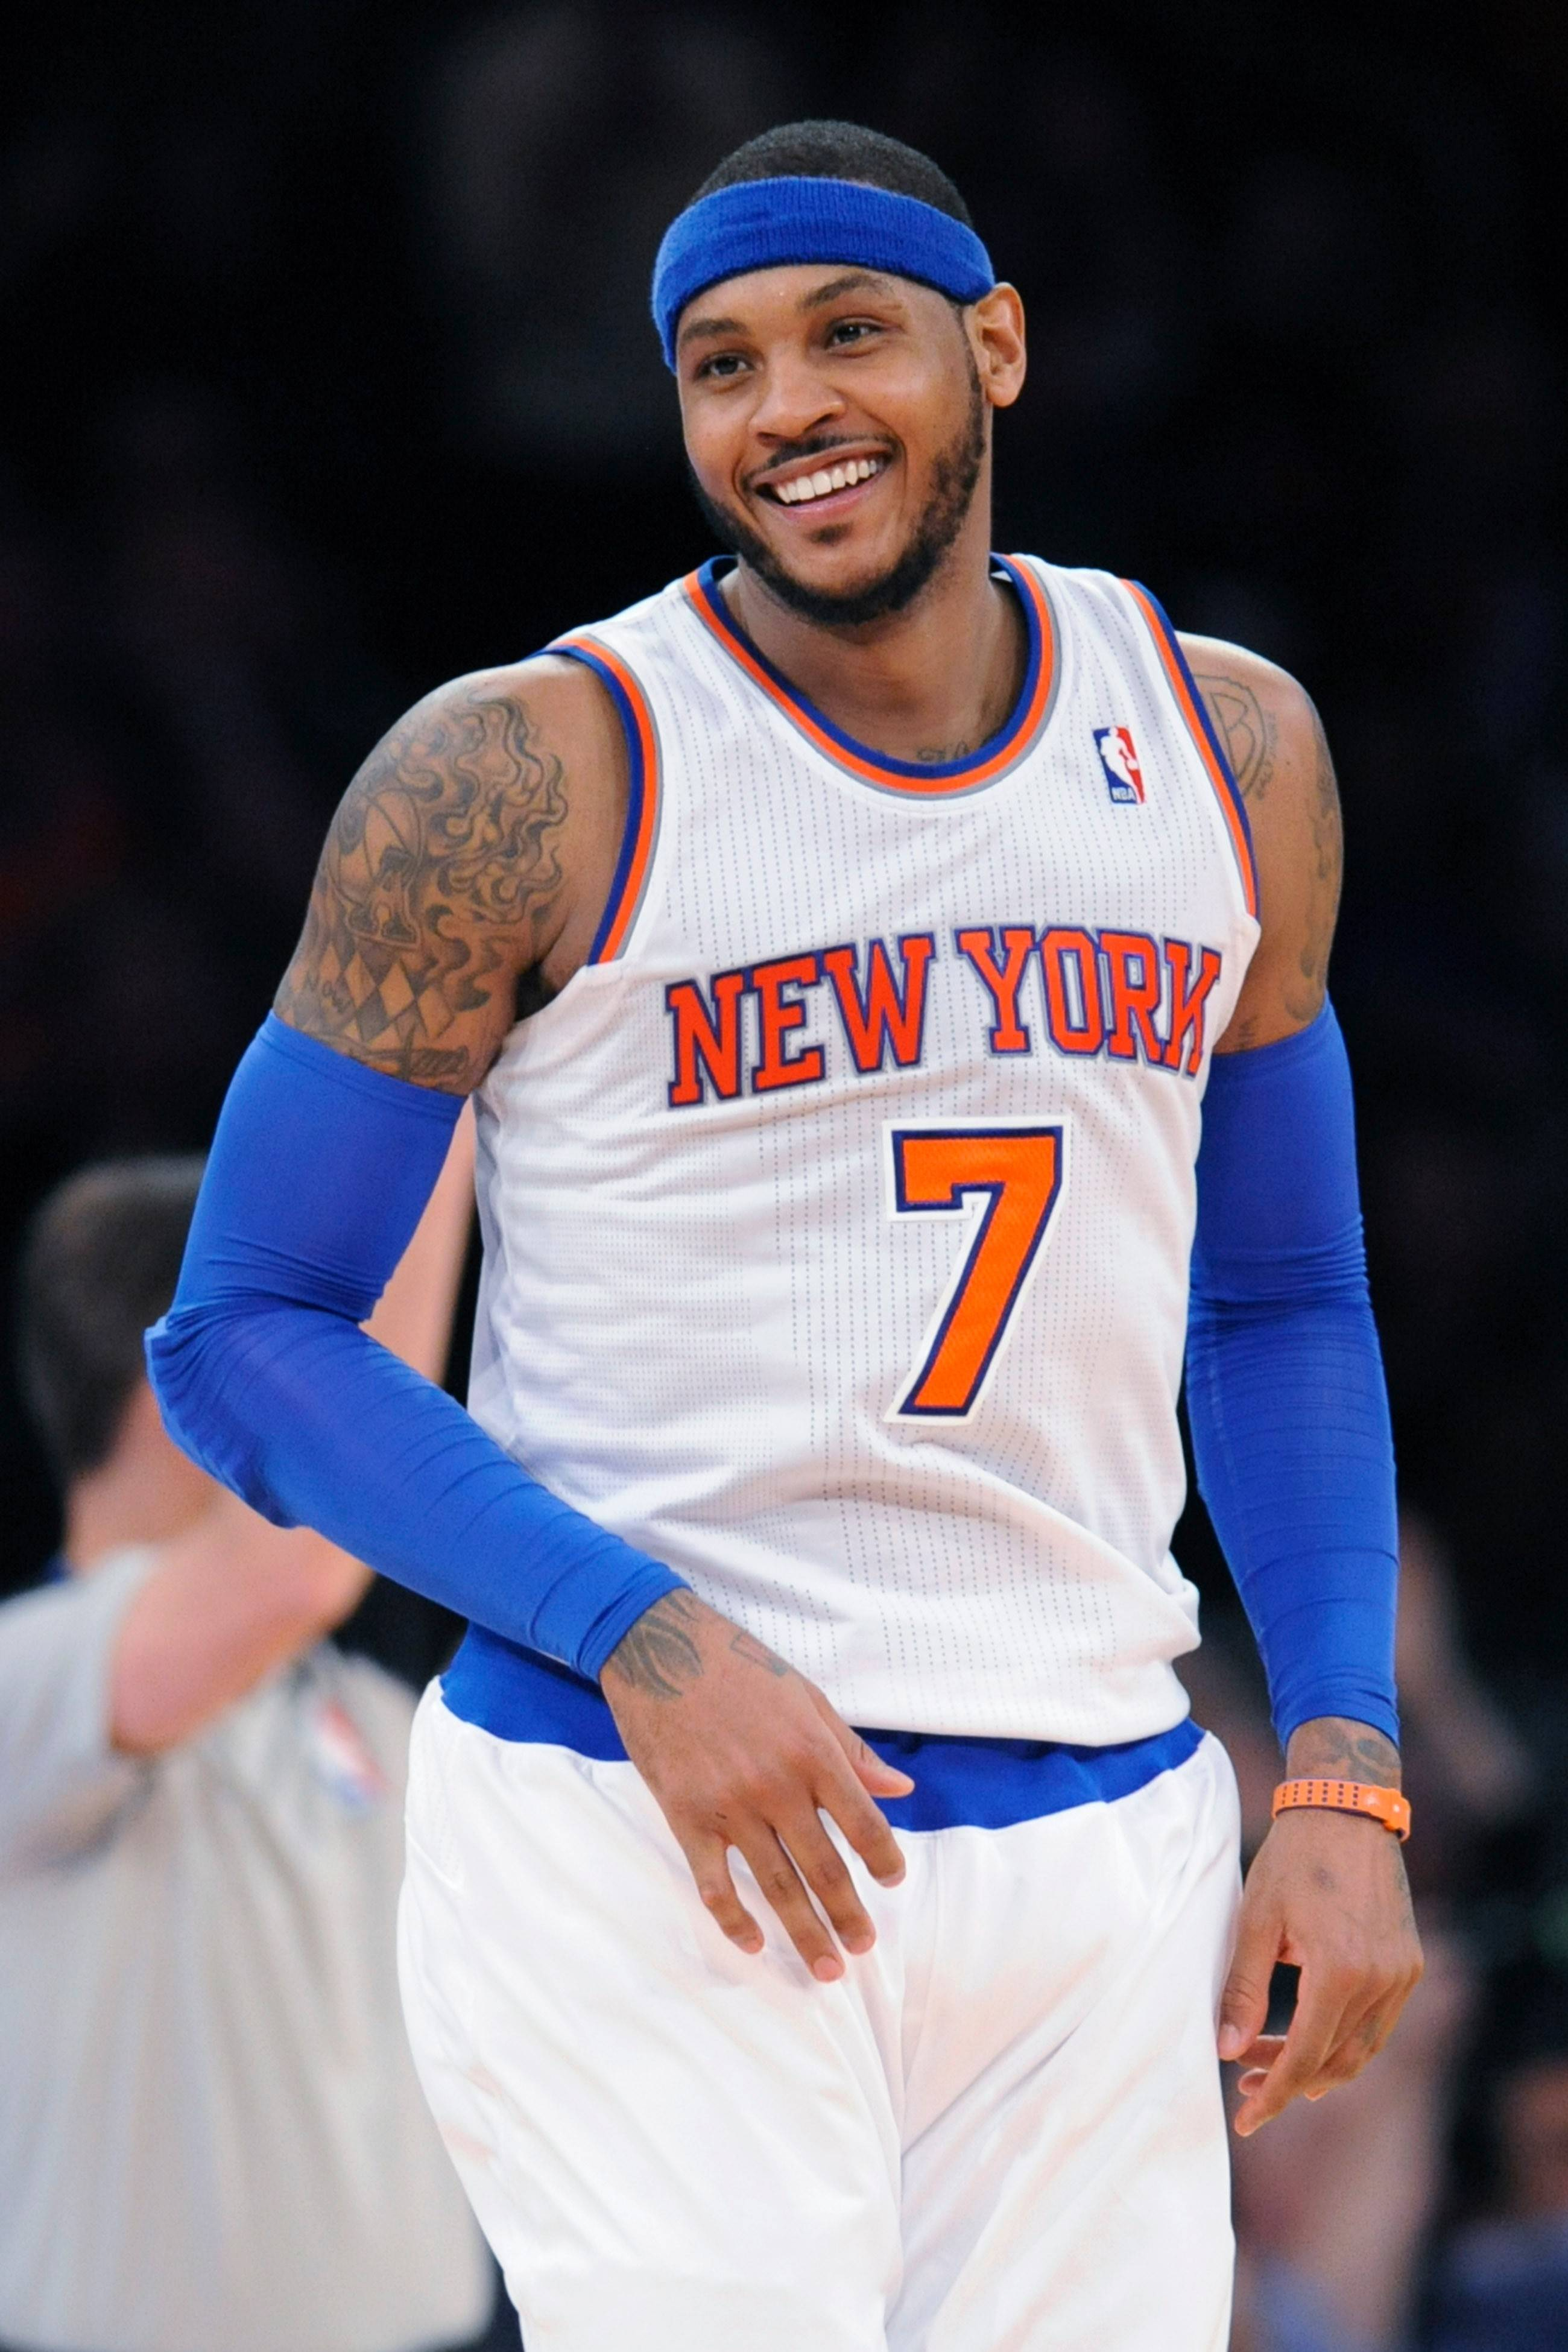 New York Knicks' Carmelo Anthony smiles after hitting a three-point shot during the third quarter of a Jan. 24 NBA basketball game against the Charlotte Bobcats at Madison Square Garden in New York. Anthony scored 62 points as the Knicks won 125-96.